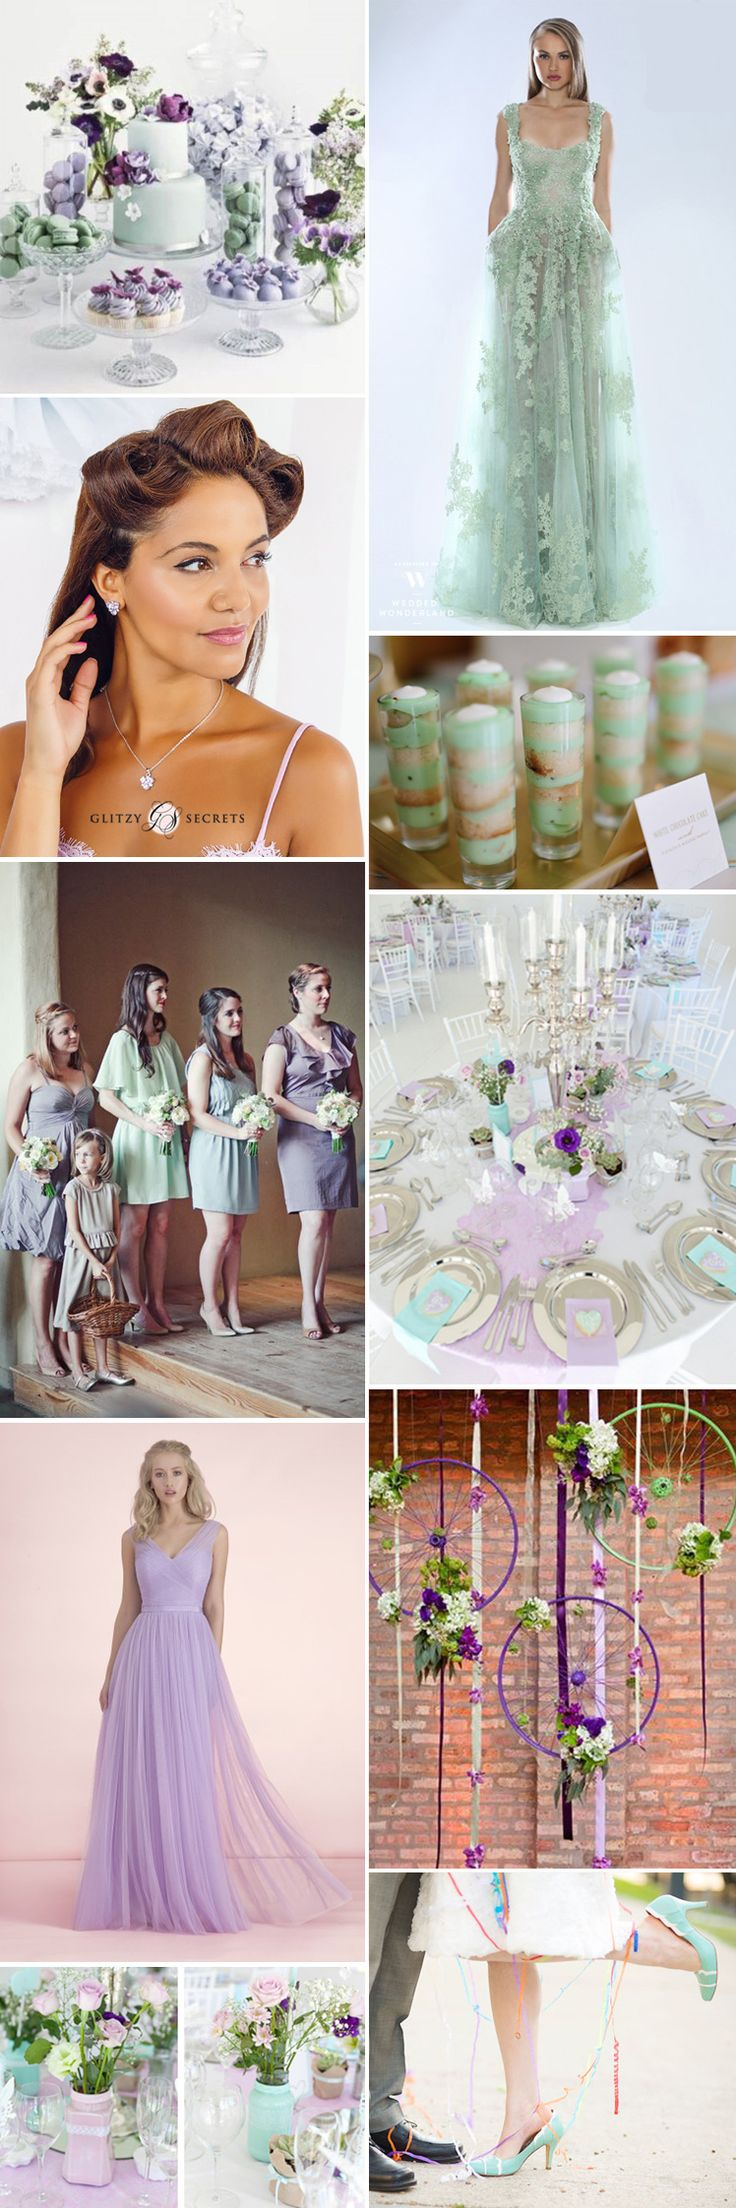 If you love the idea of including a mint tone on your wedding day then consider a gorgeous mint green and lilac wedding color scheme